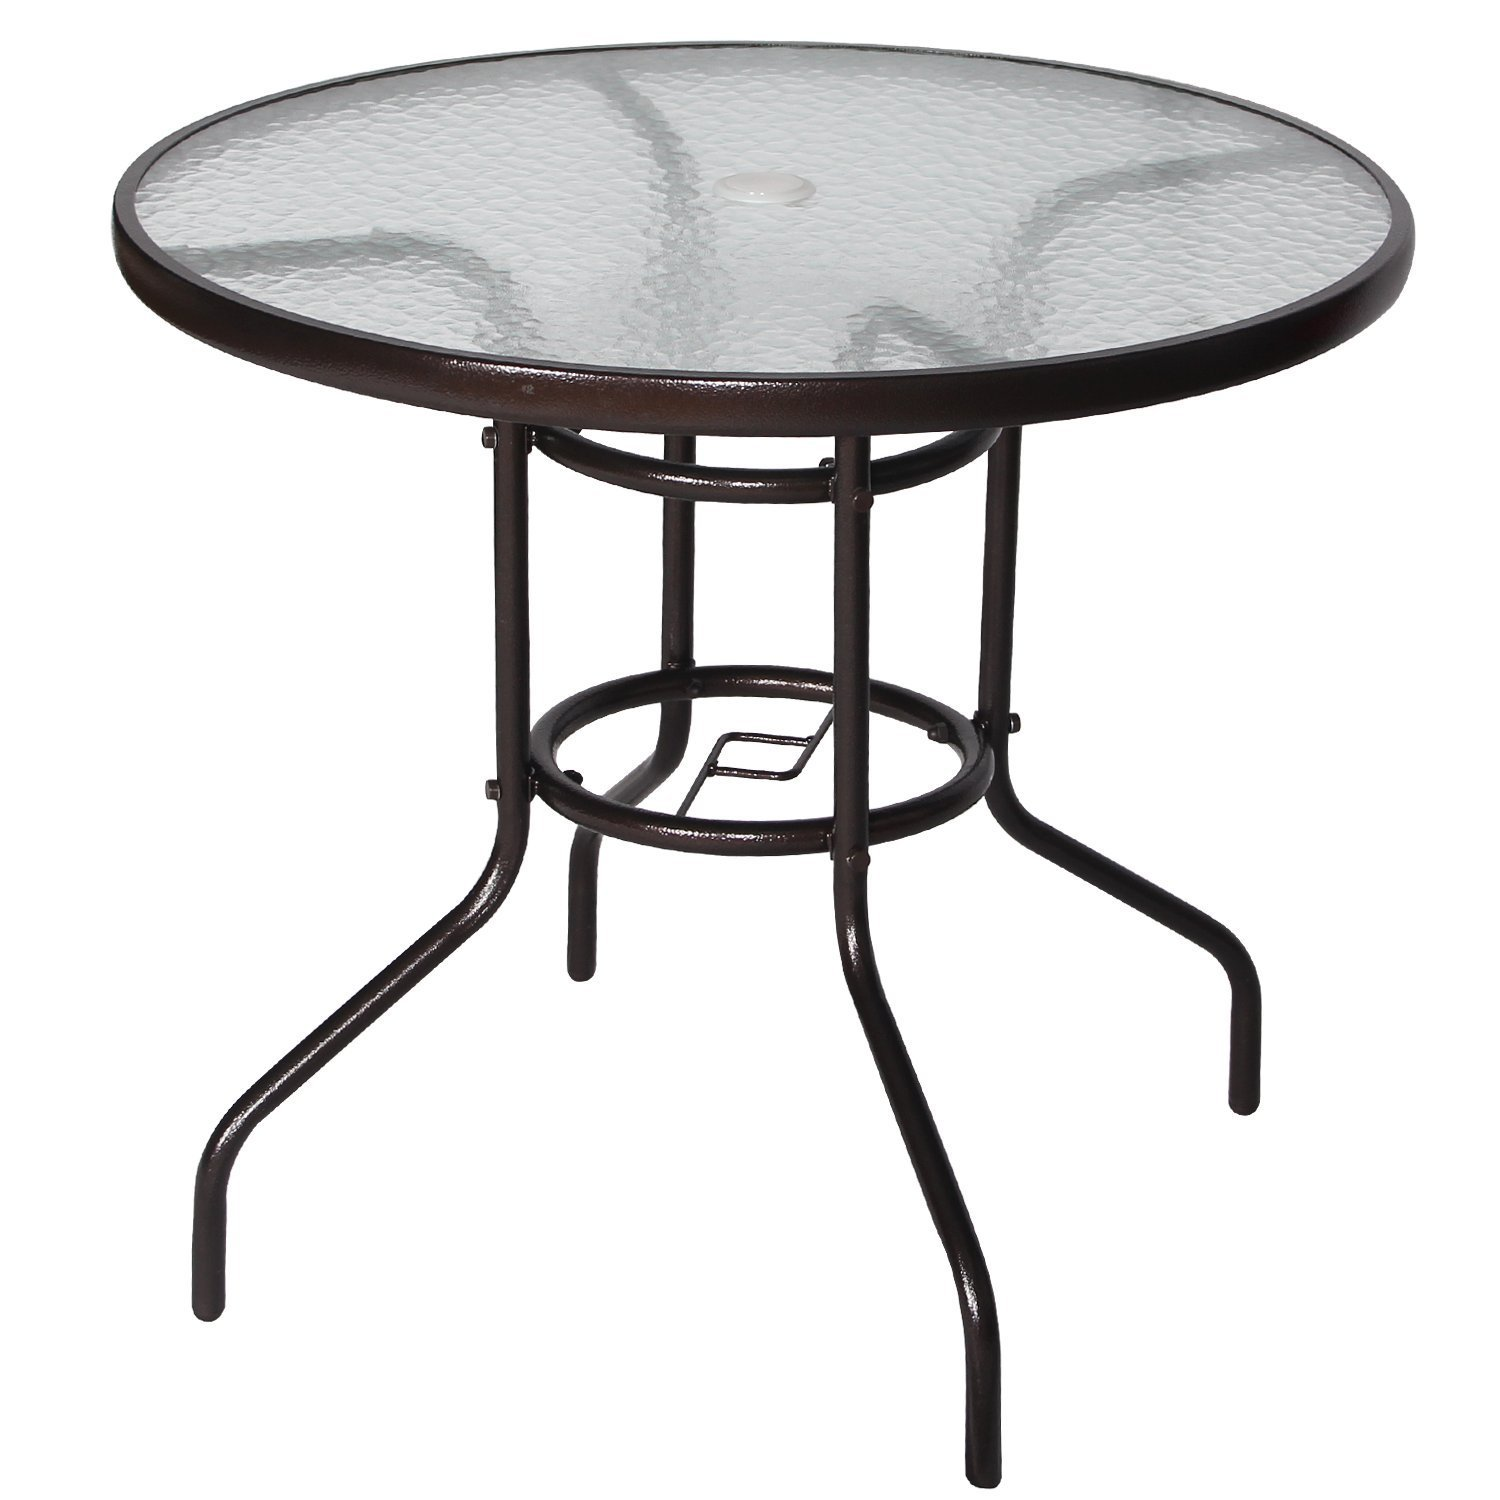 Round outdoor metal table Expanded Metal Cloud Mountain 32 Walmart Metal Round Patio Tables